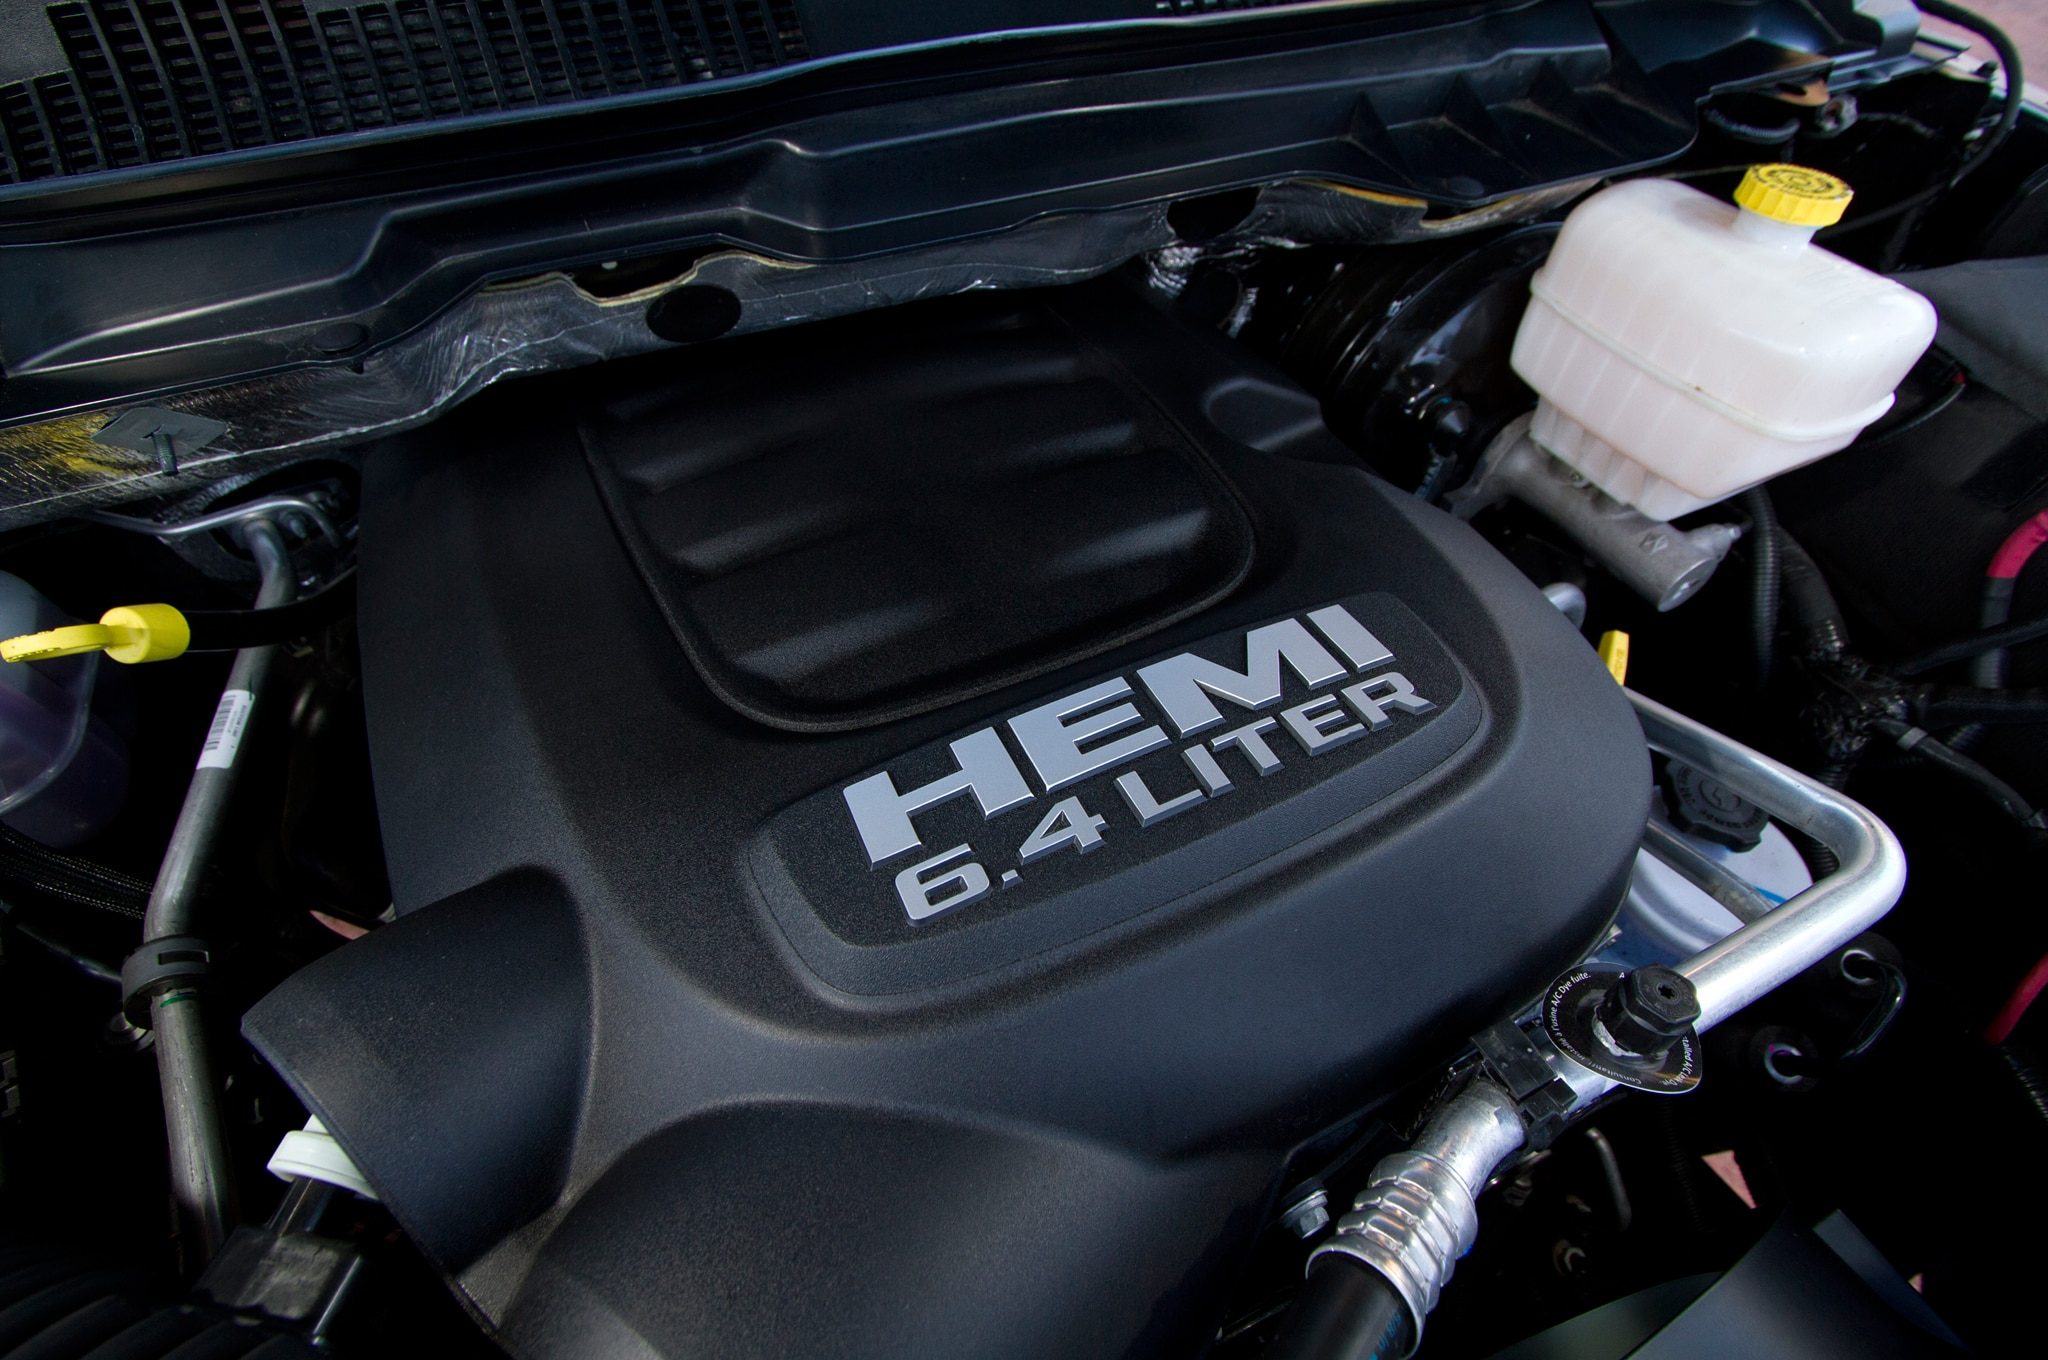 2014 Ram 2500 Power Wagon engine cover